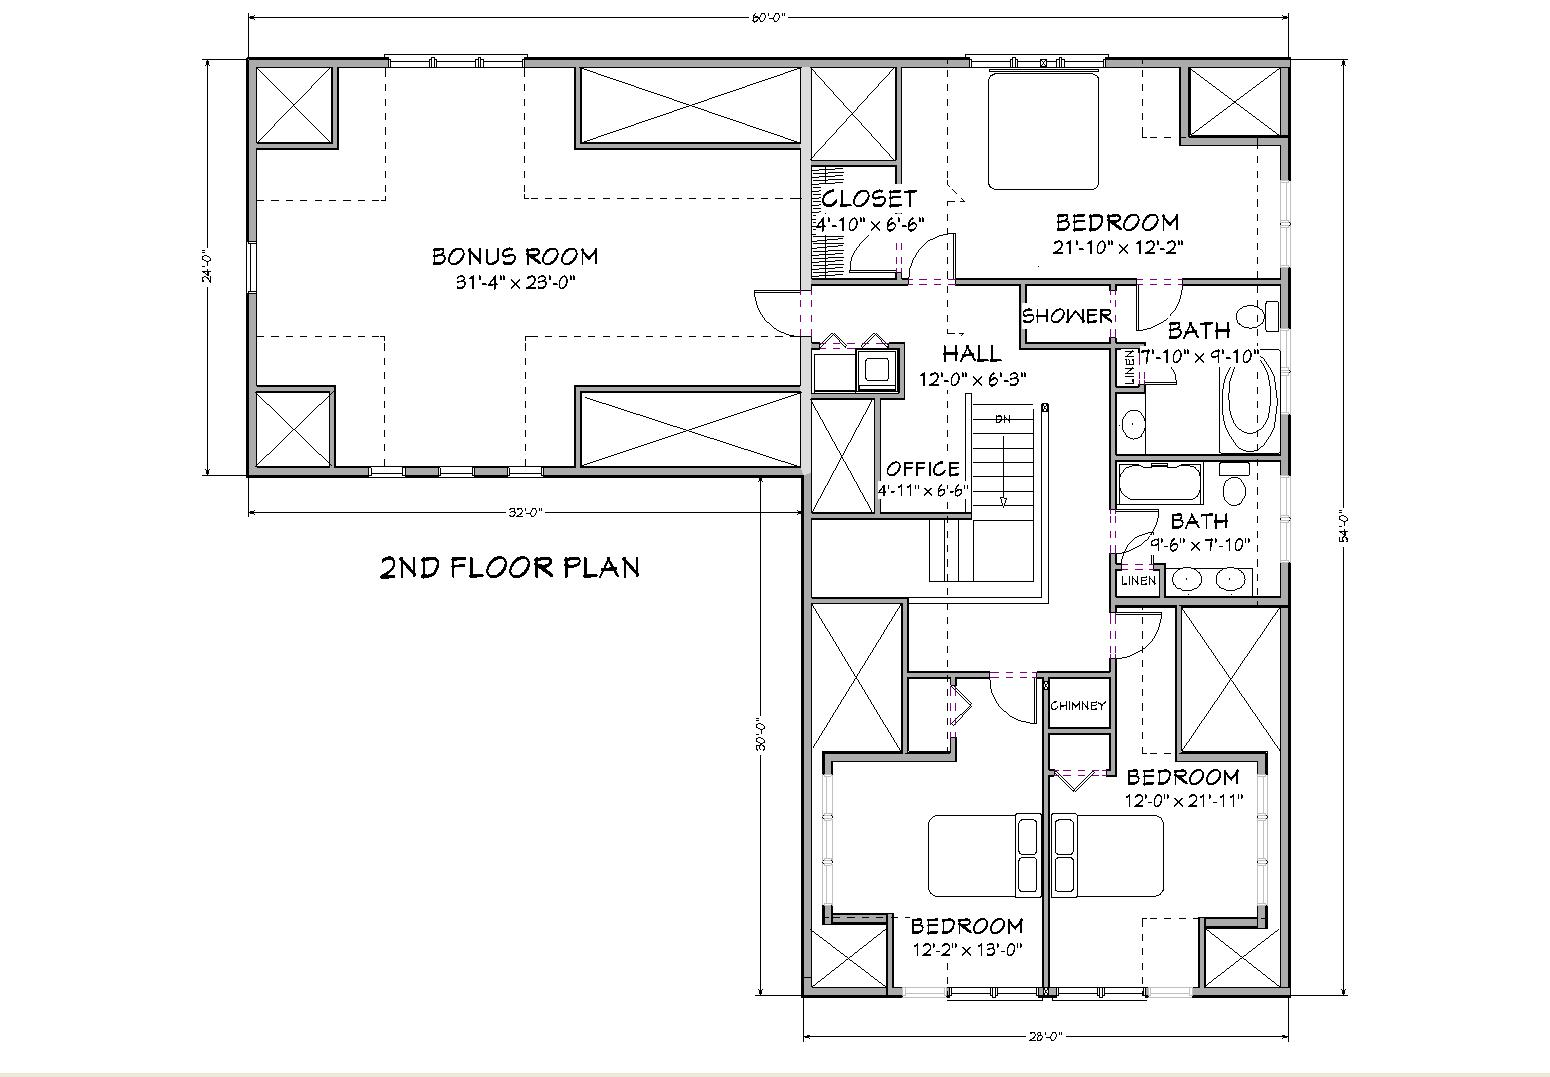 3000 square foot home plans floor plans for 2500 to 3000 sq ft homes